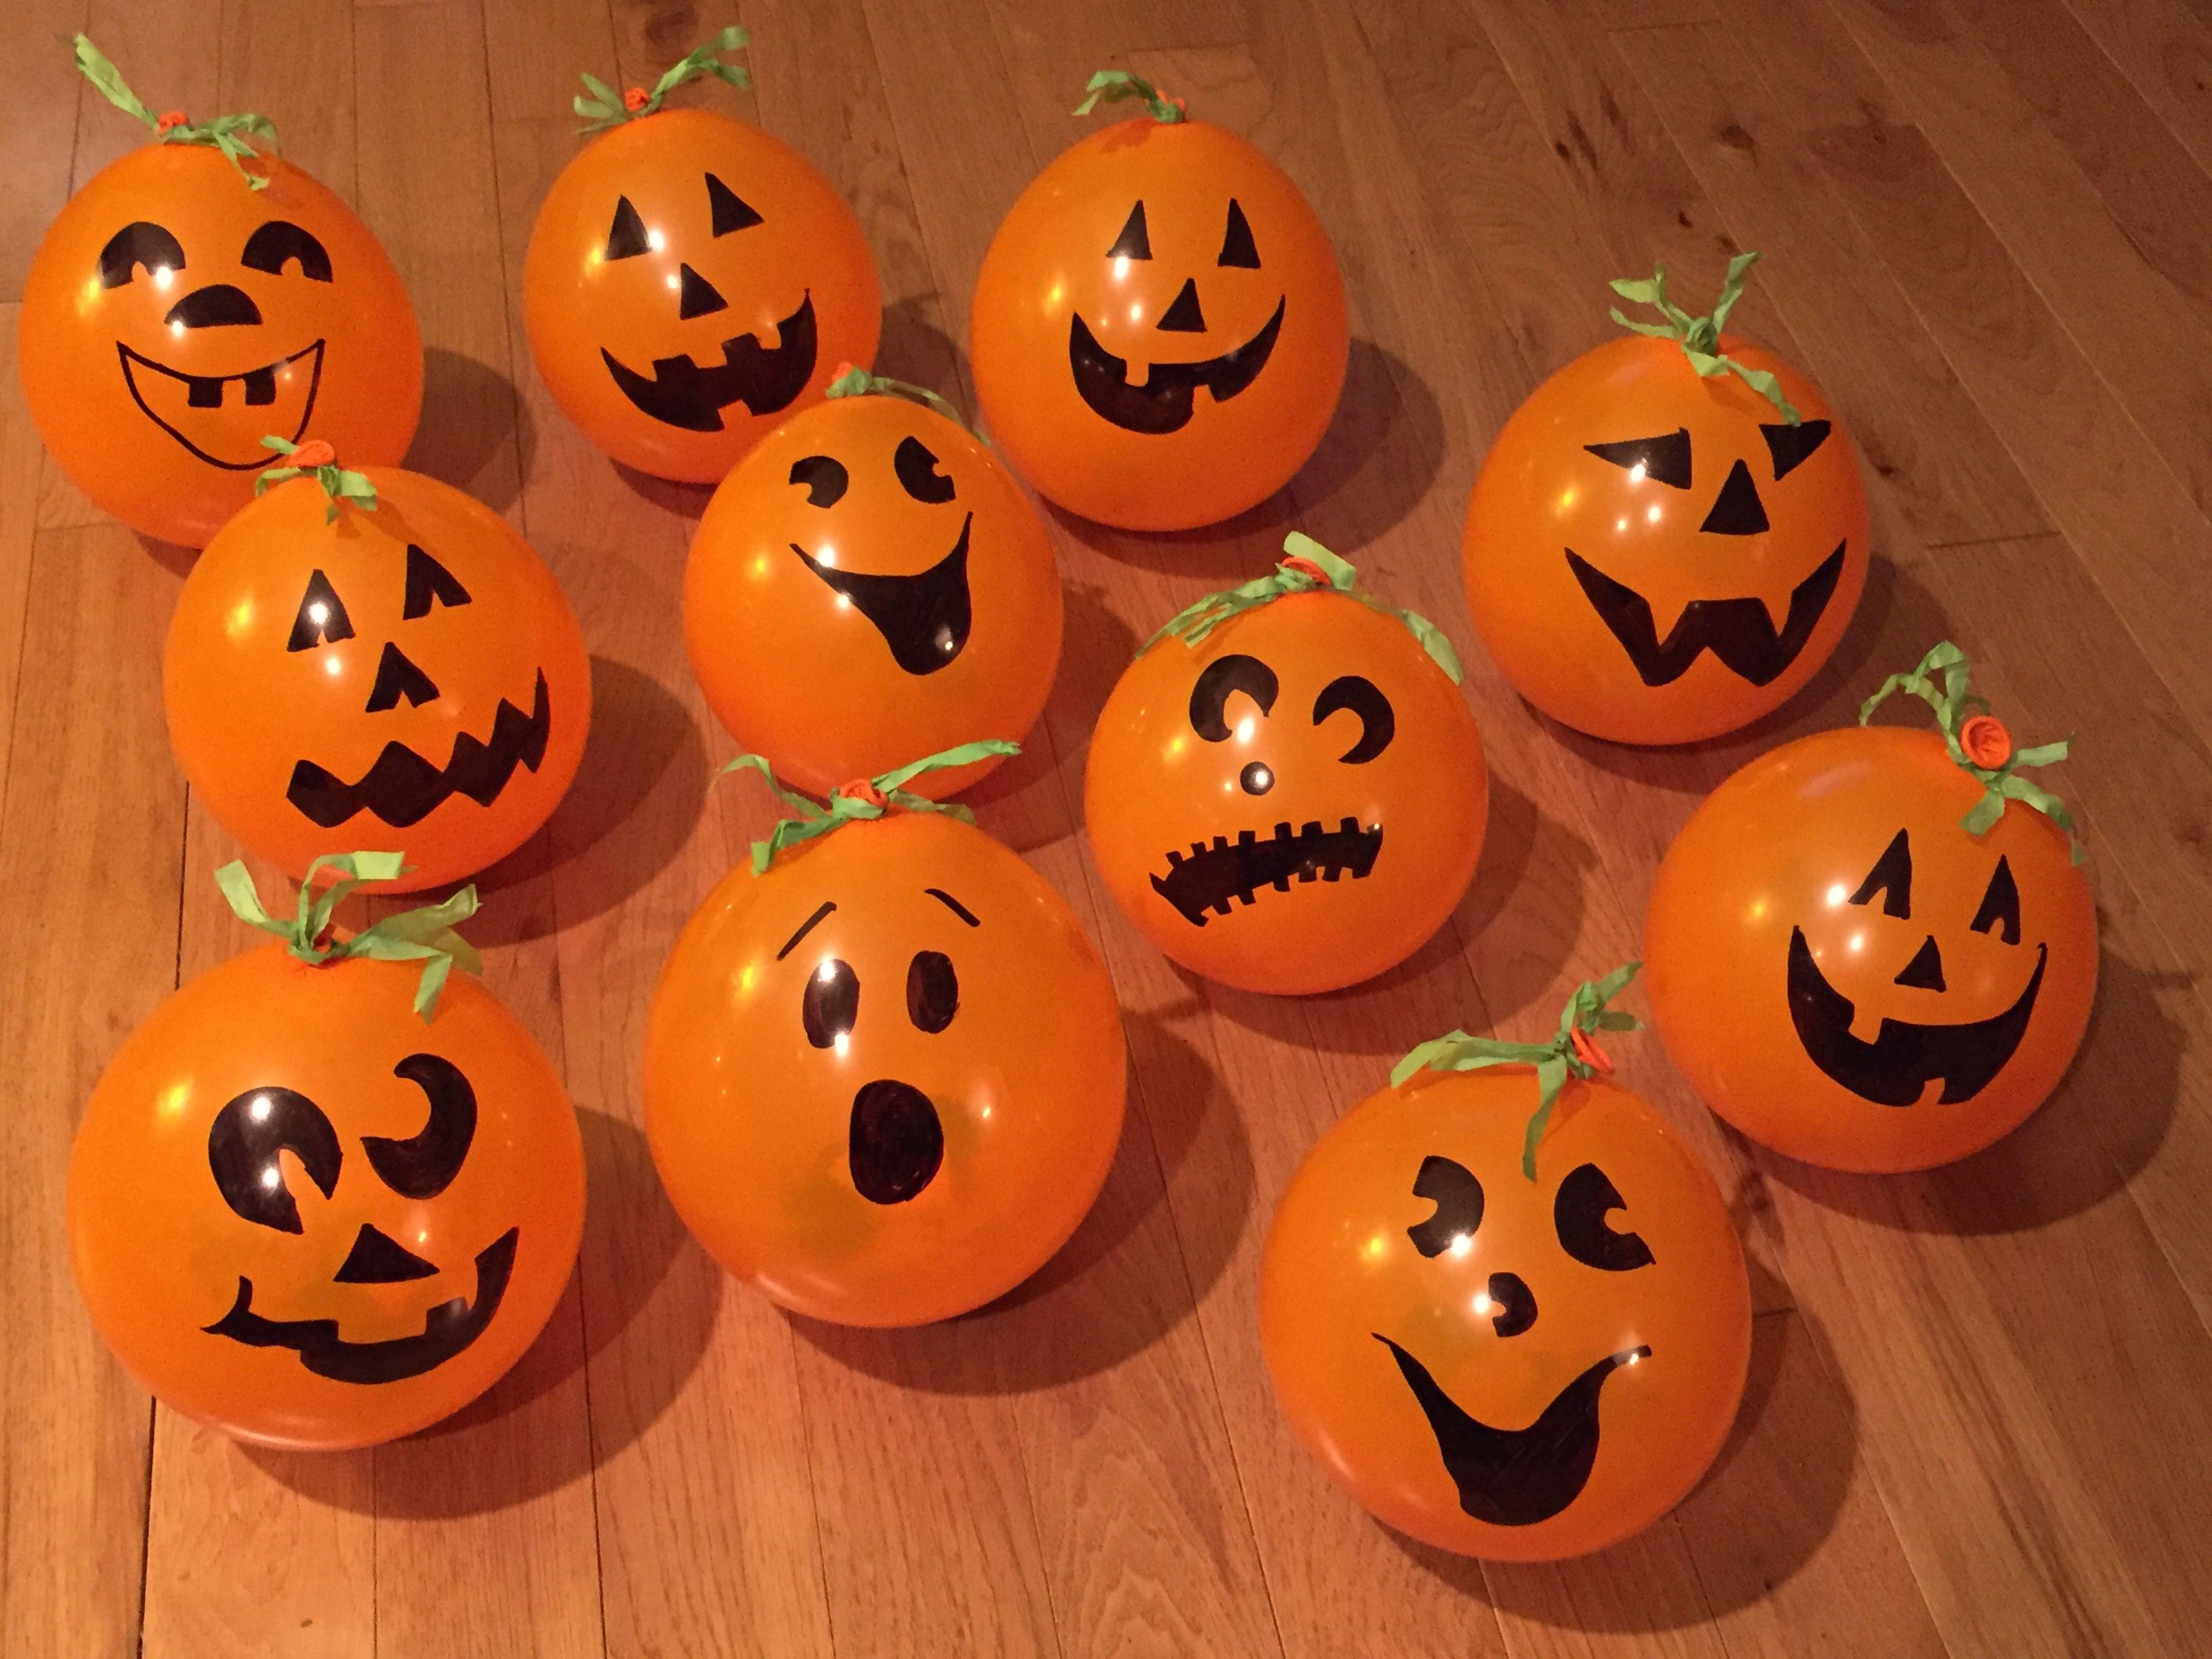 Pumpkin Patch Fall Or Halloween Party Favors Stretch Balloons And Add Treats Then Draw Faces Halloween Crafts Family Halloween Party Halloween Treat Bags